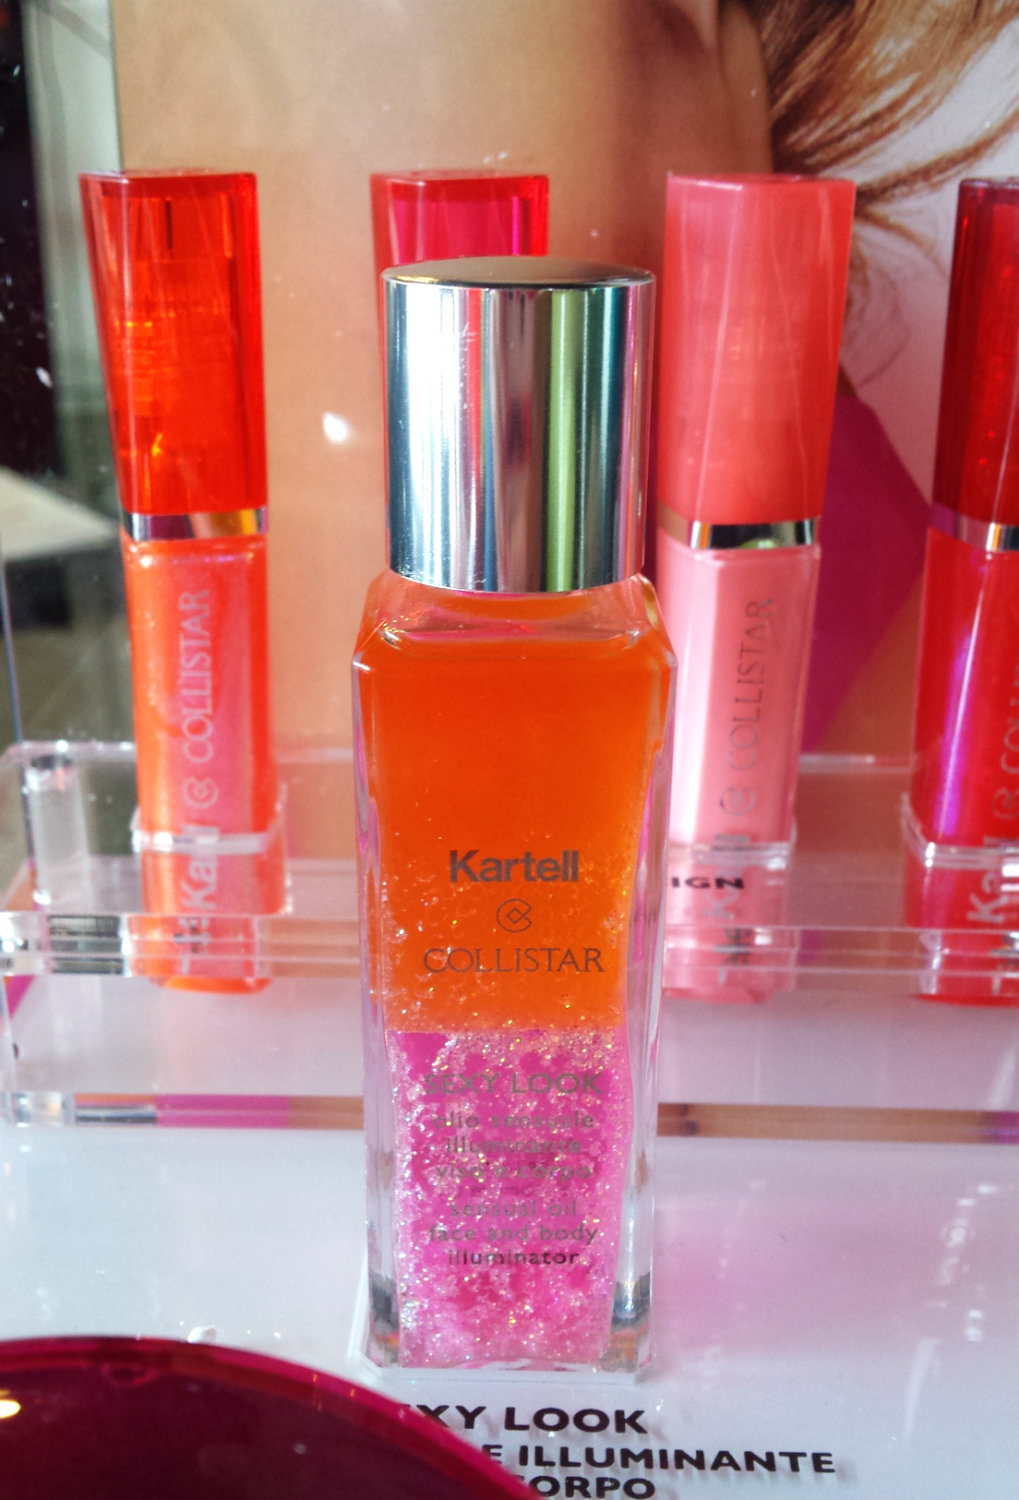 Collistar & Kartell - Sensual Illuminating Oil